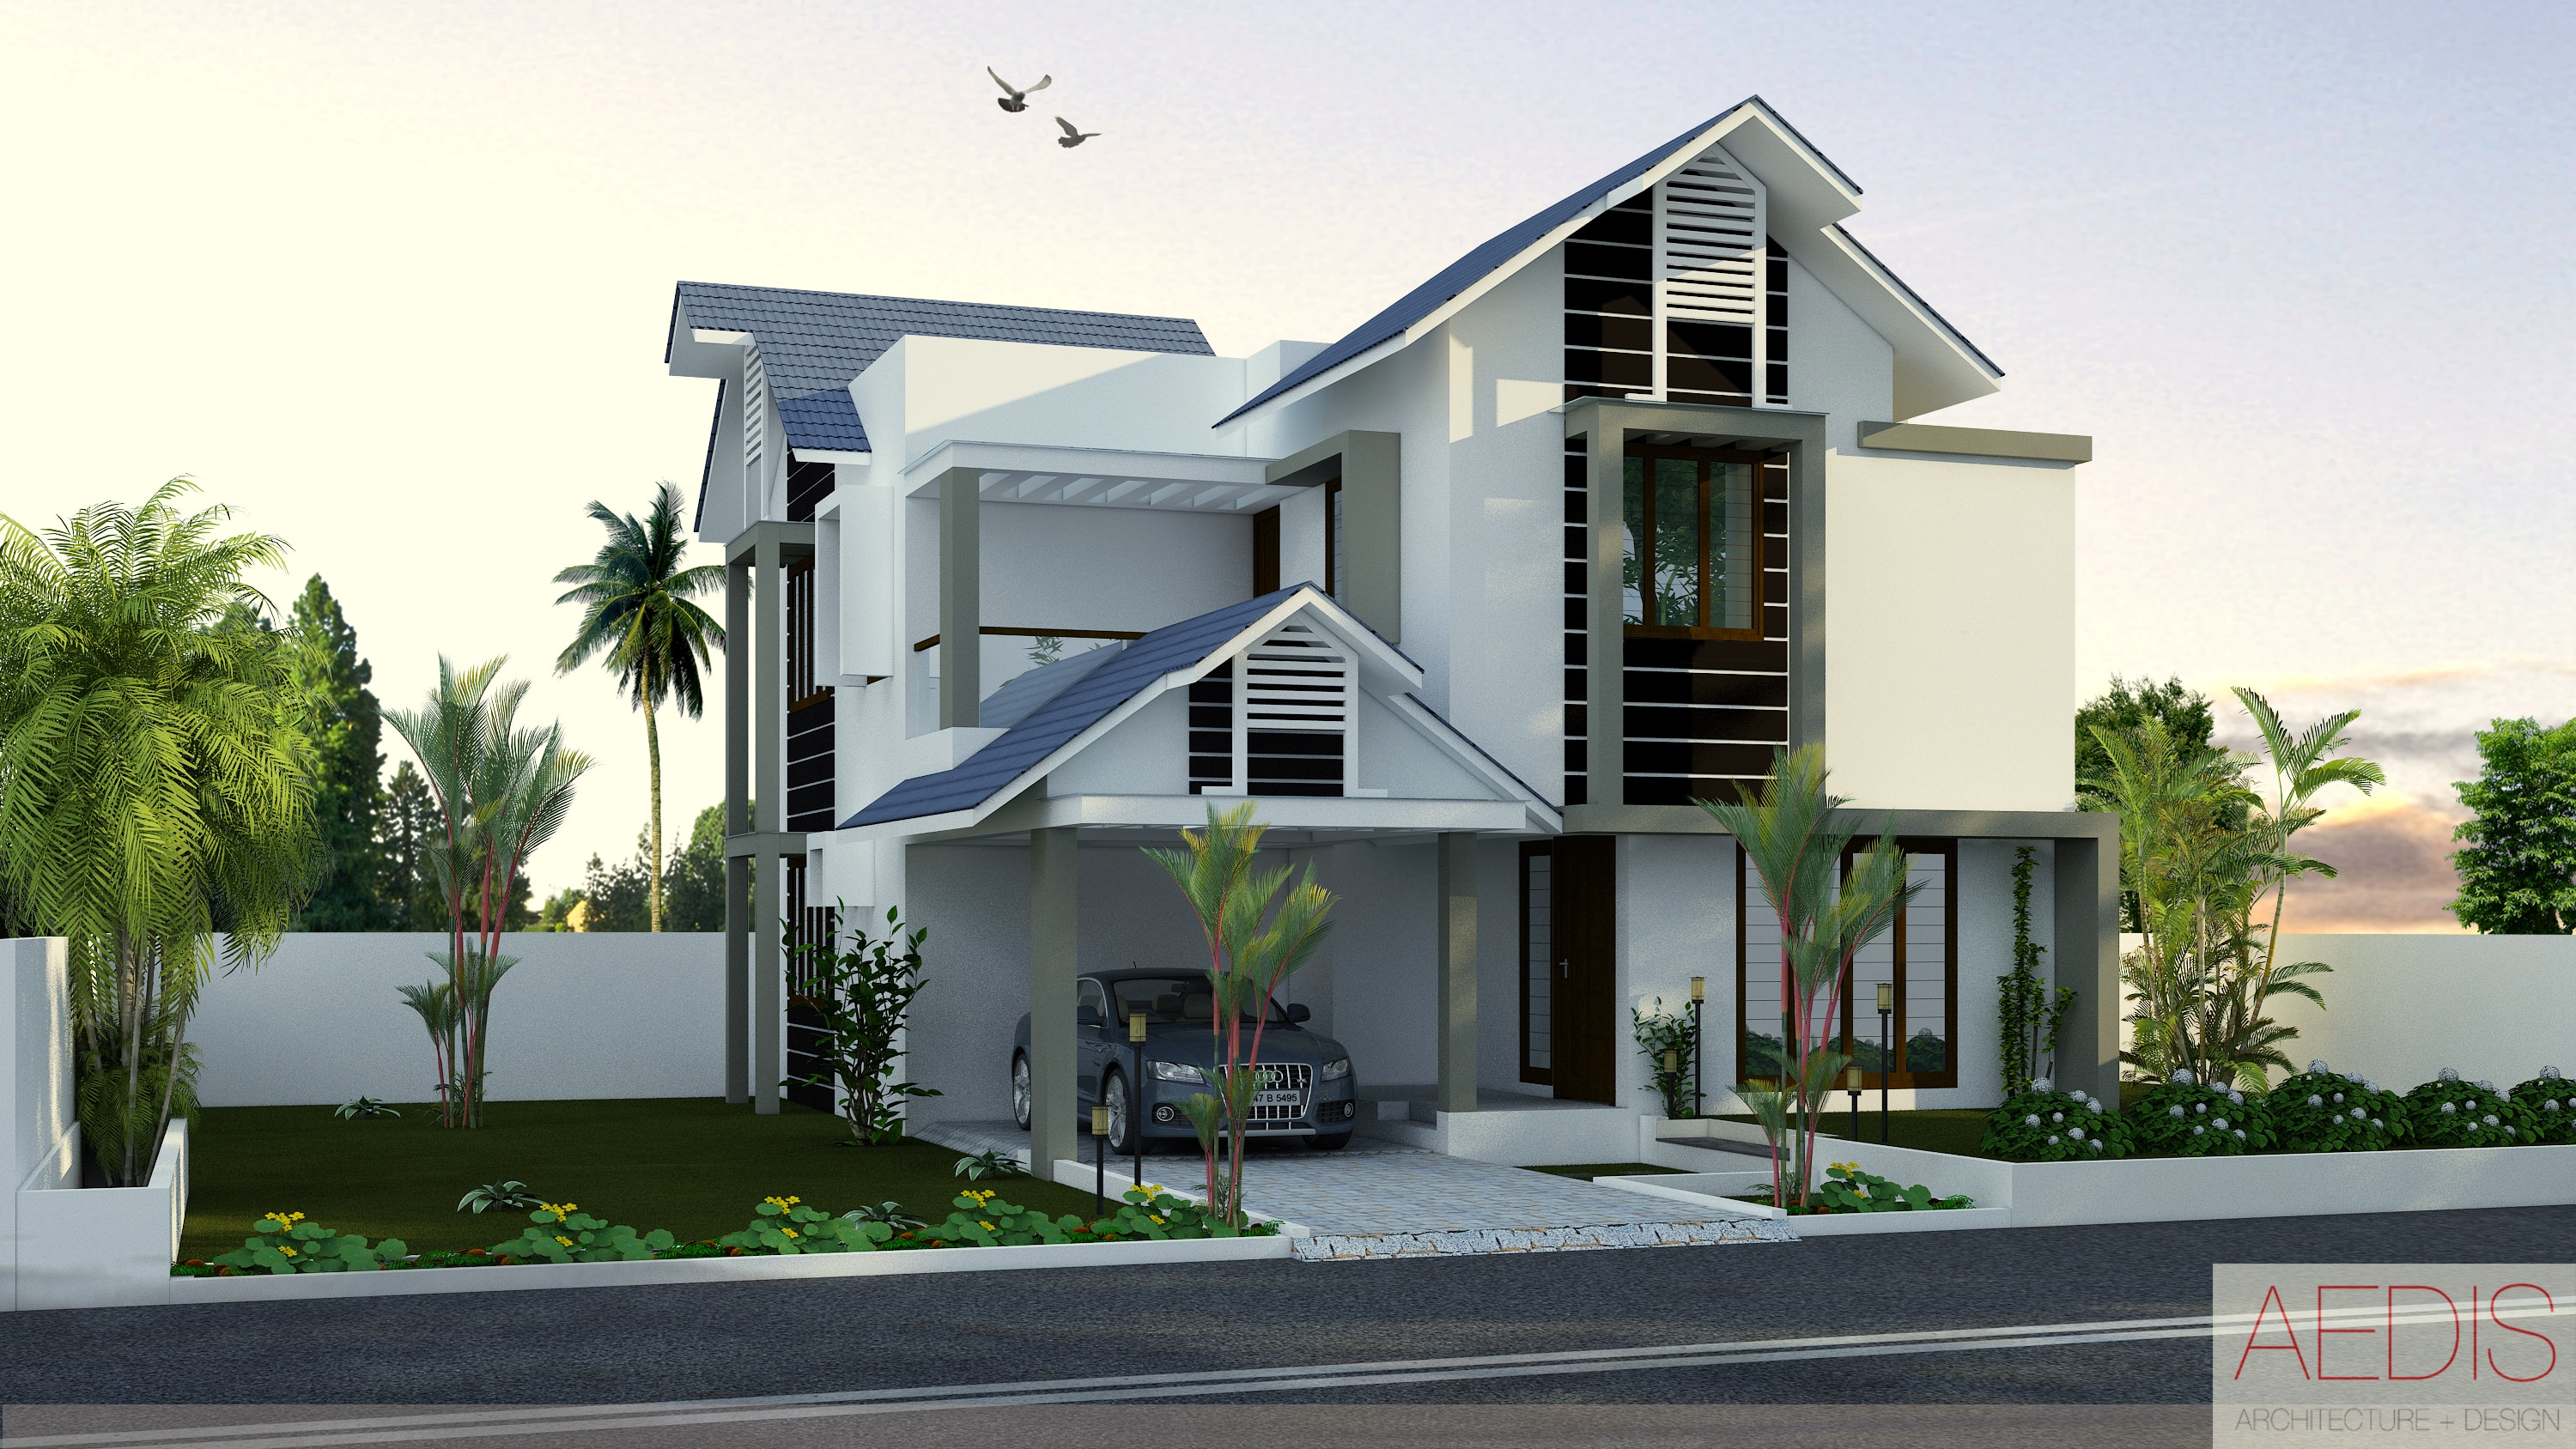 We provide kerala style house designs kerala home designs for Kerala modern house designs